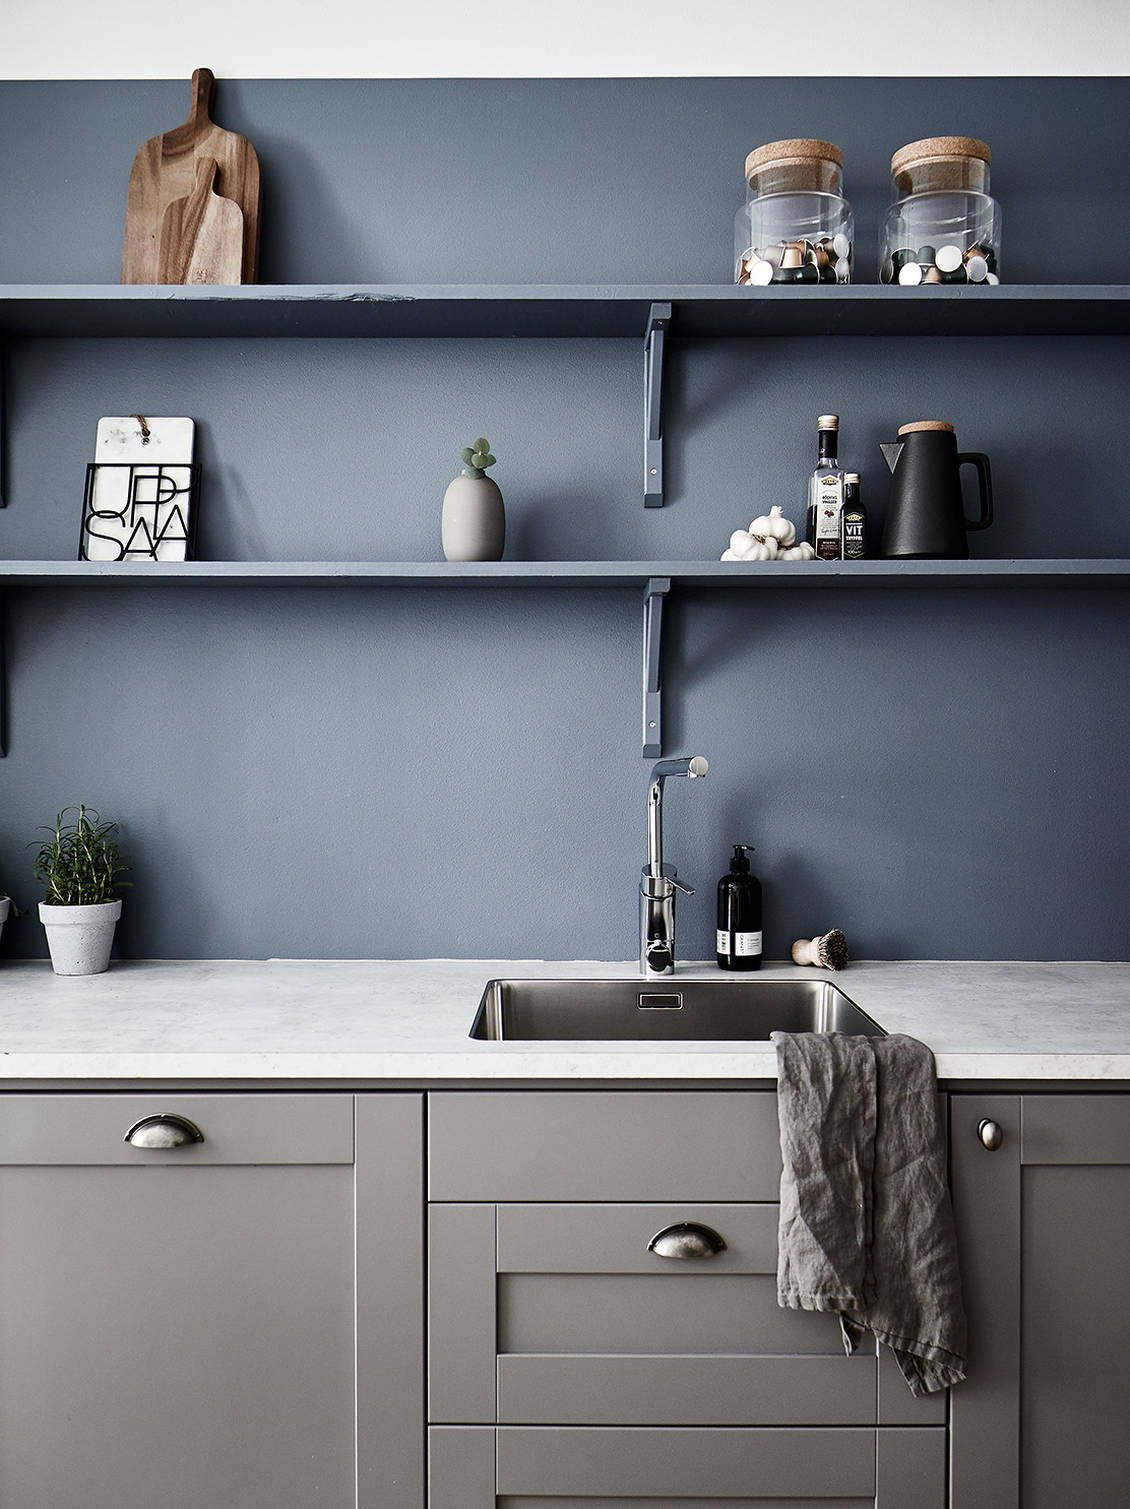 Kitchen in warm grey and petrol blue   COCO LAPINE DESIGN   Grey ...